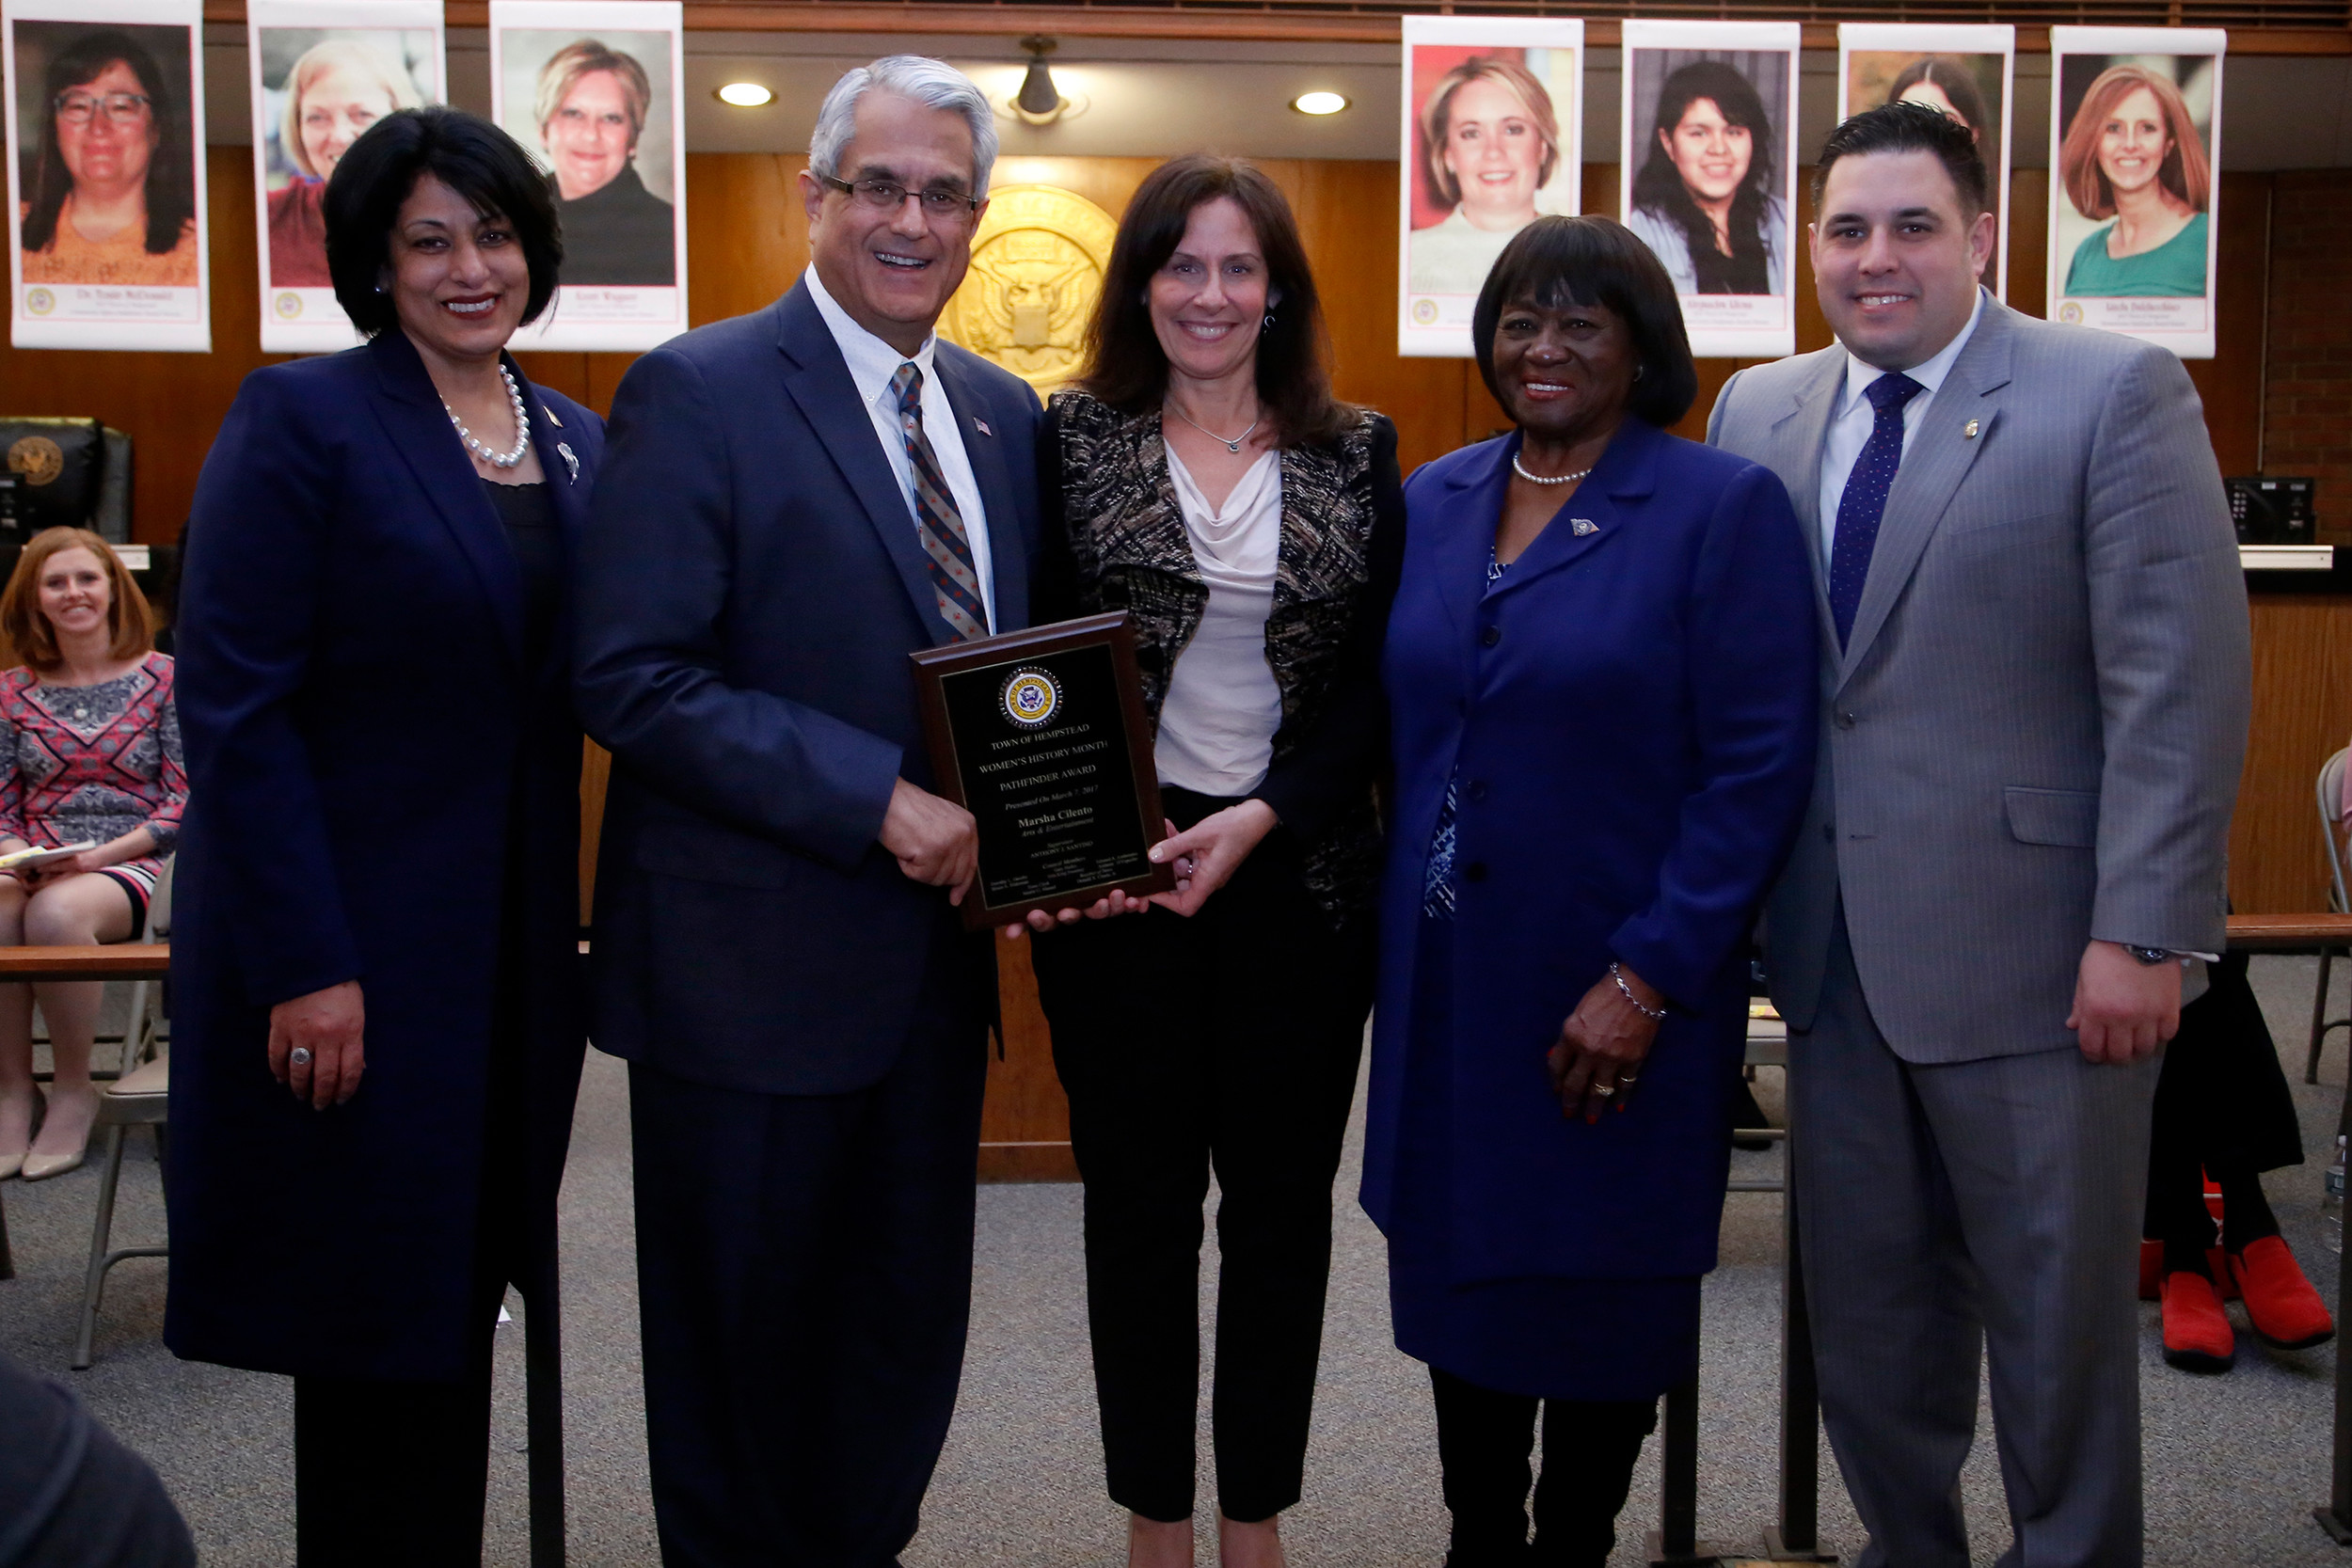 Marsha Cilento, center recieving the Arts & Entertainment Pathfinder Award with Town Clerk Nasrin Ahmad, far left, Hempstead Town Supervisor Anthony Santino, Town Councilwoman Dorothy Goosby, and Town Councilman Anthony D'Esposito.